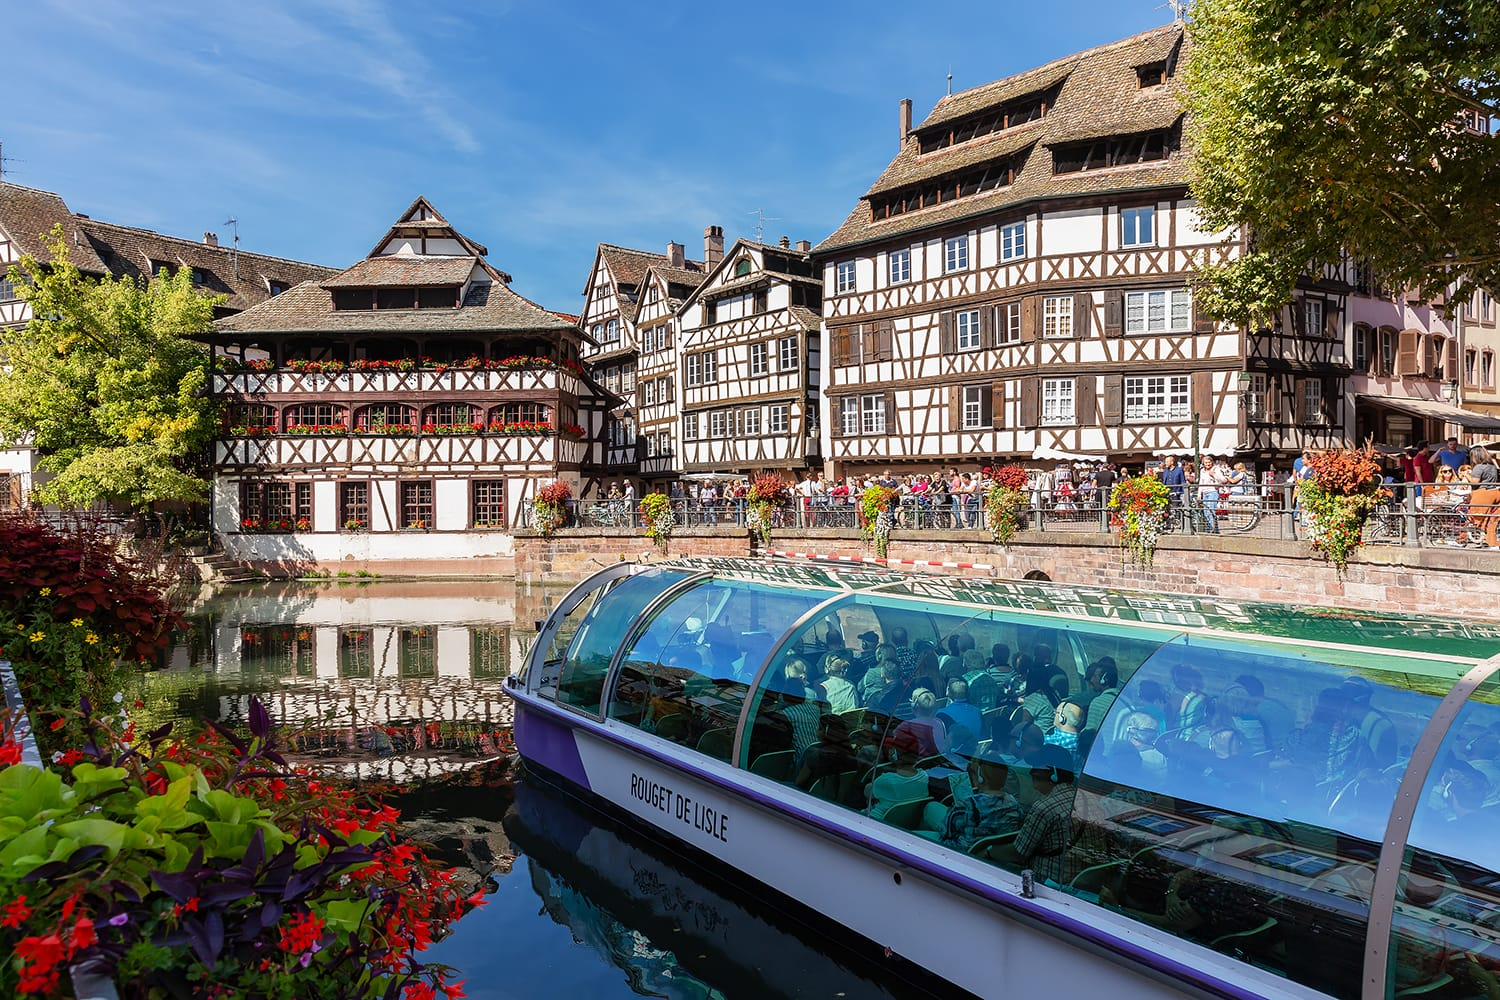 Boat cruise passing through La Petite in Strasbourg, France